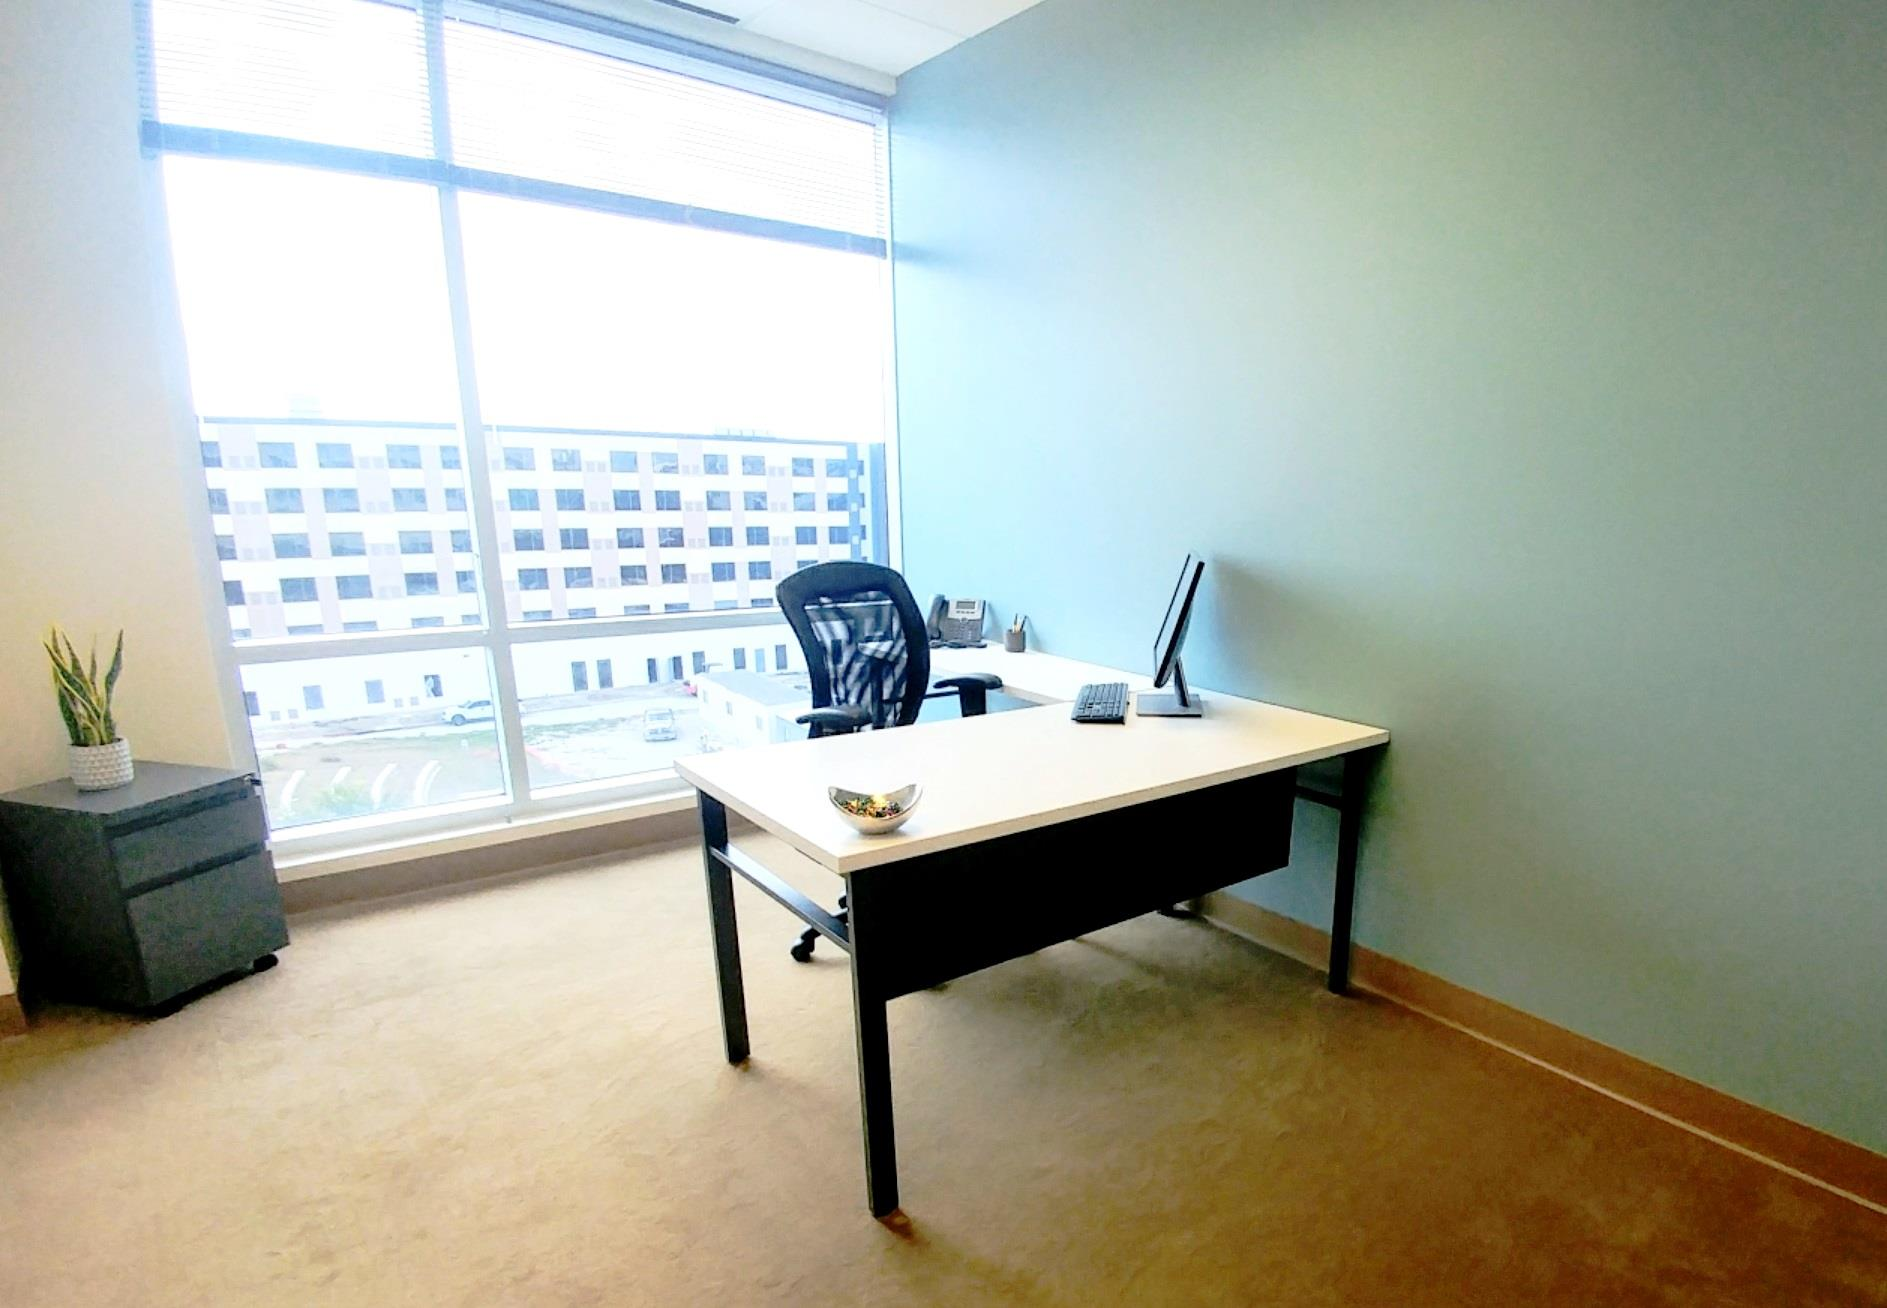 (ALN) One Allen Center - Beautiful Window Office Move-in Ready